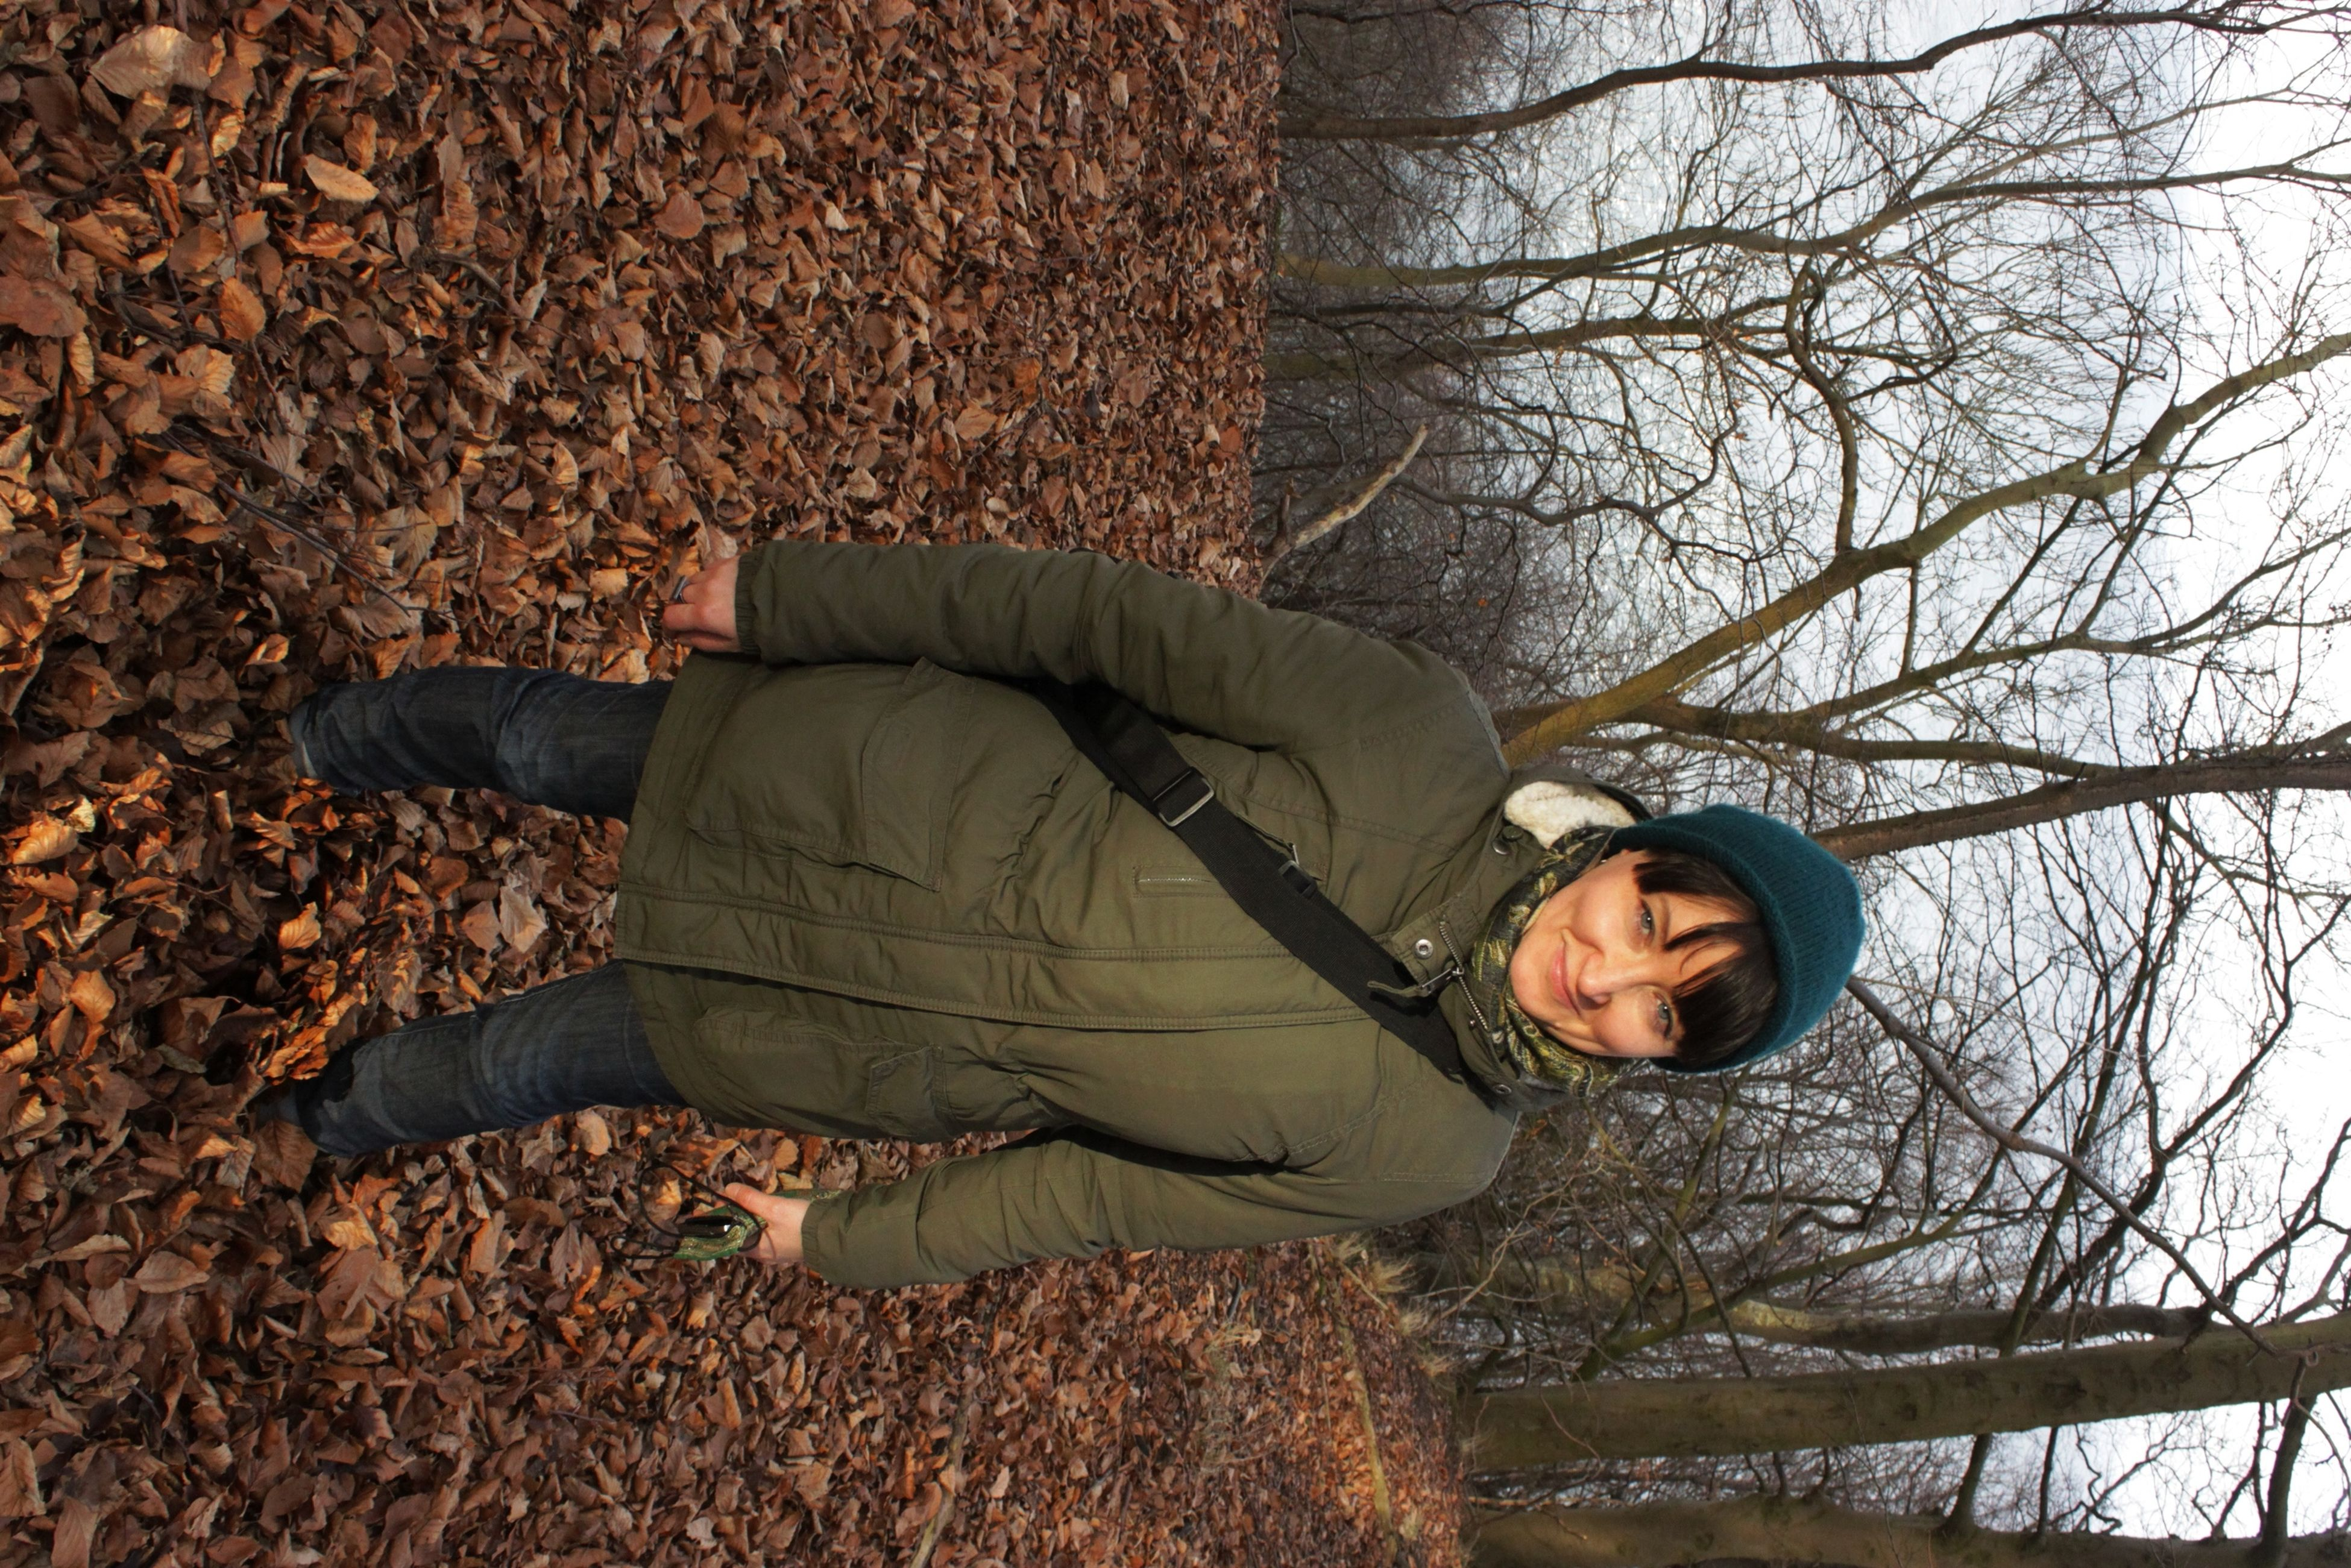 looking at camera, lifestyles, portrait, casual clothing, young adult, tree, front view, standing, leisure activity, person, full length, forest, warm clothing, young women, season, bare tree, autumn, jacket